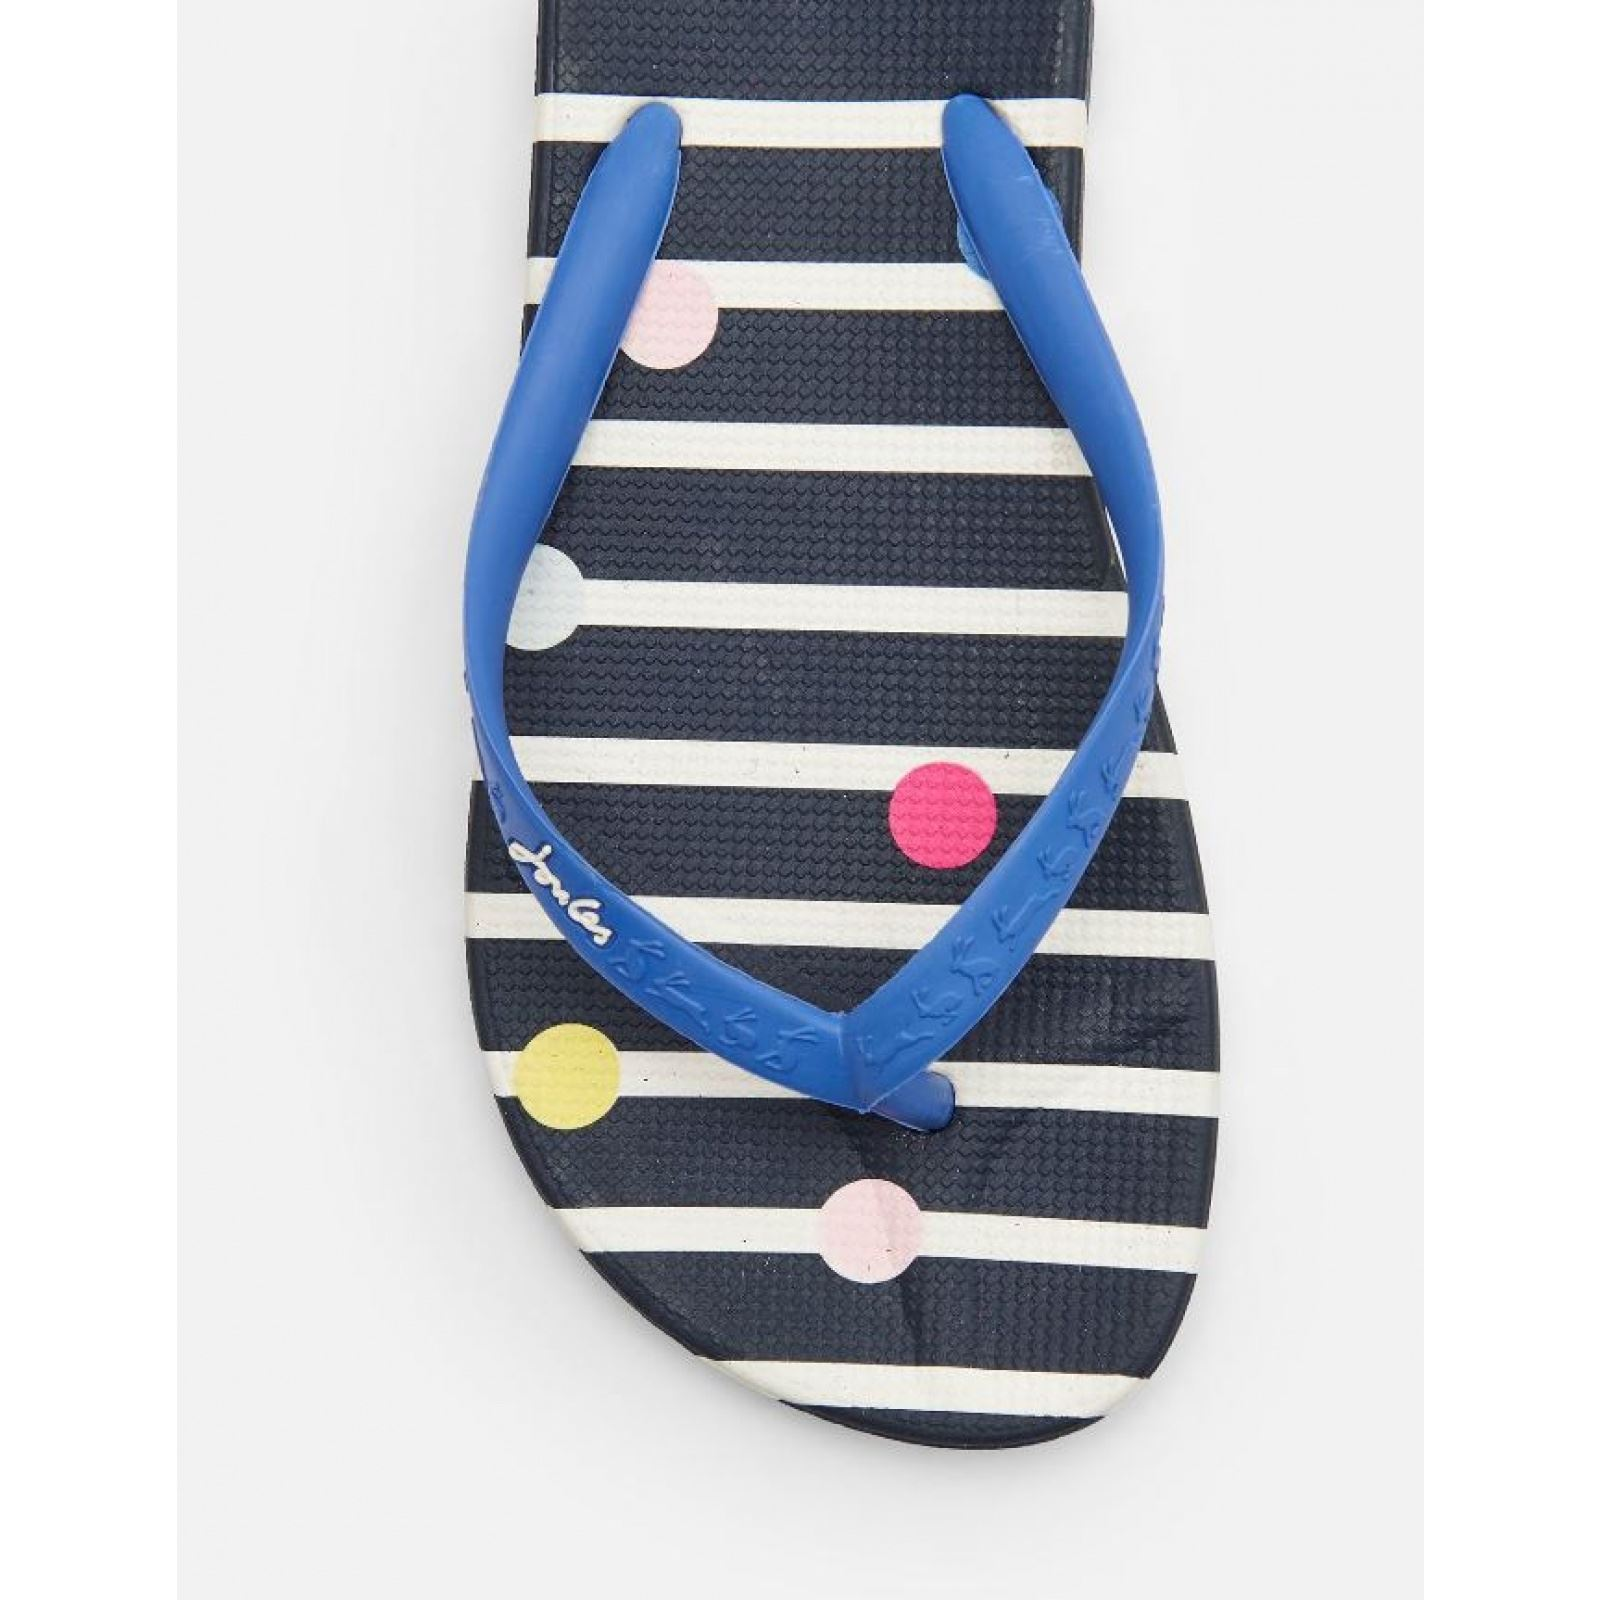 Joules-Flip-Flops-Sandals-Summer-Flip-Flop-NEW-2019-COLOURS thumbnail 33